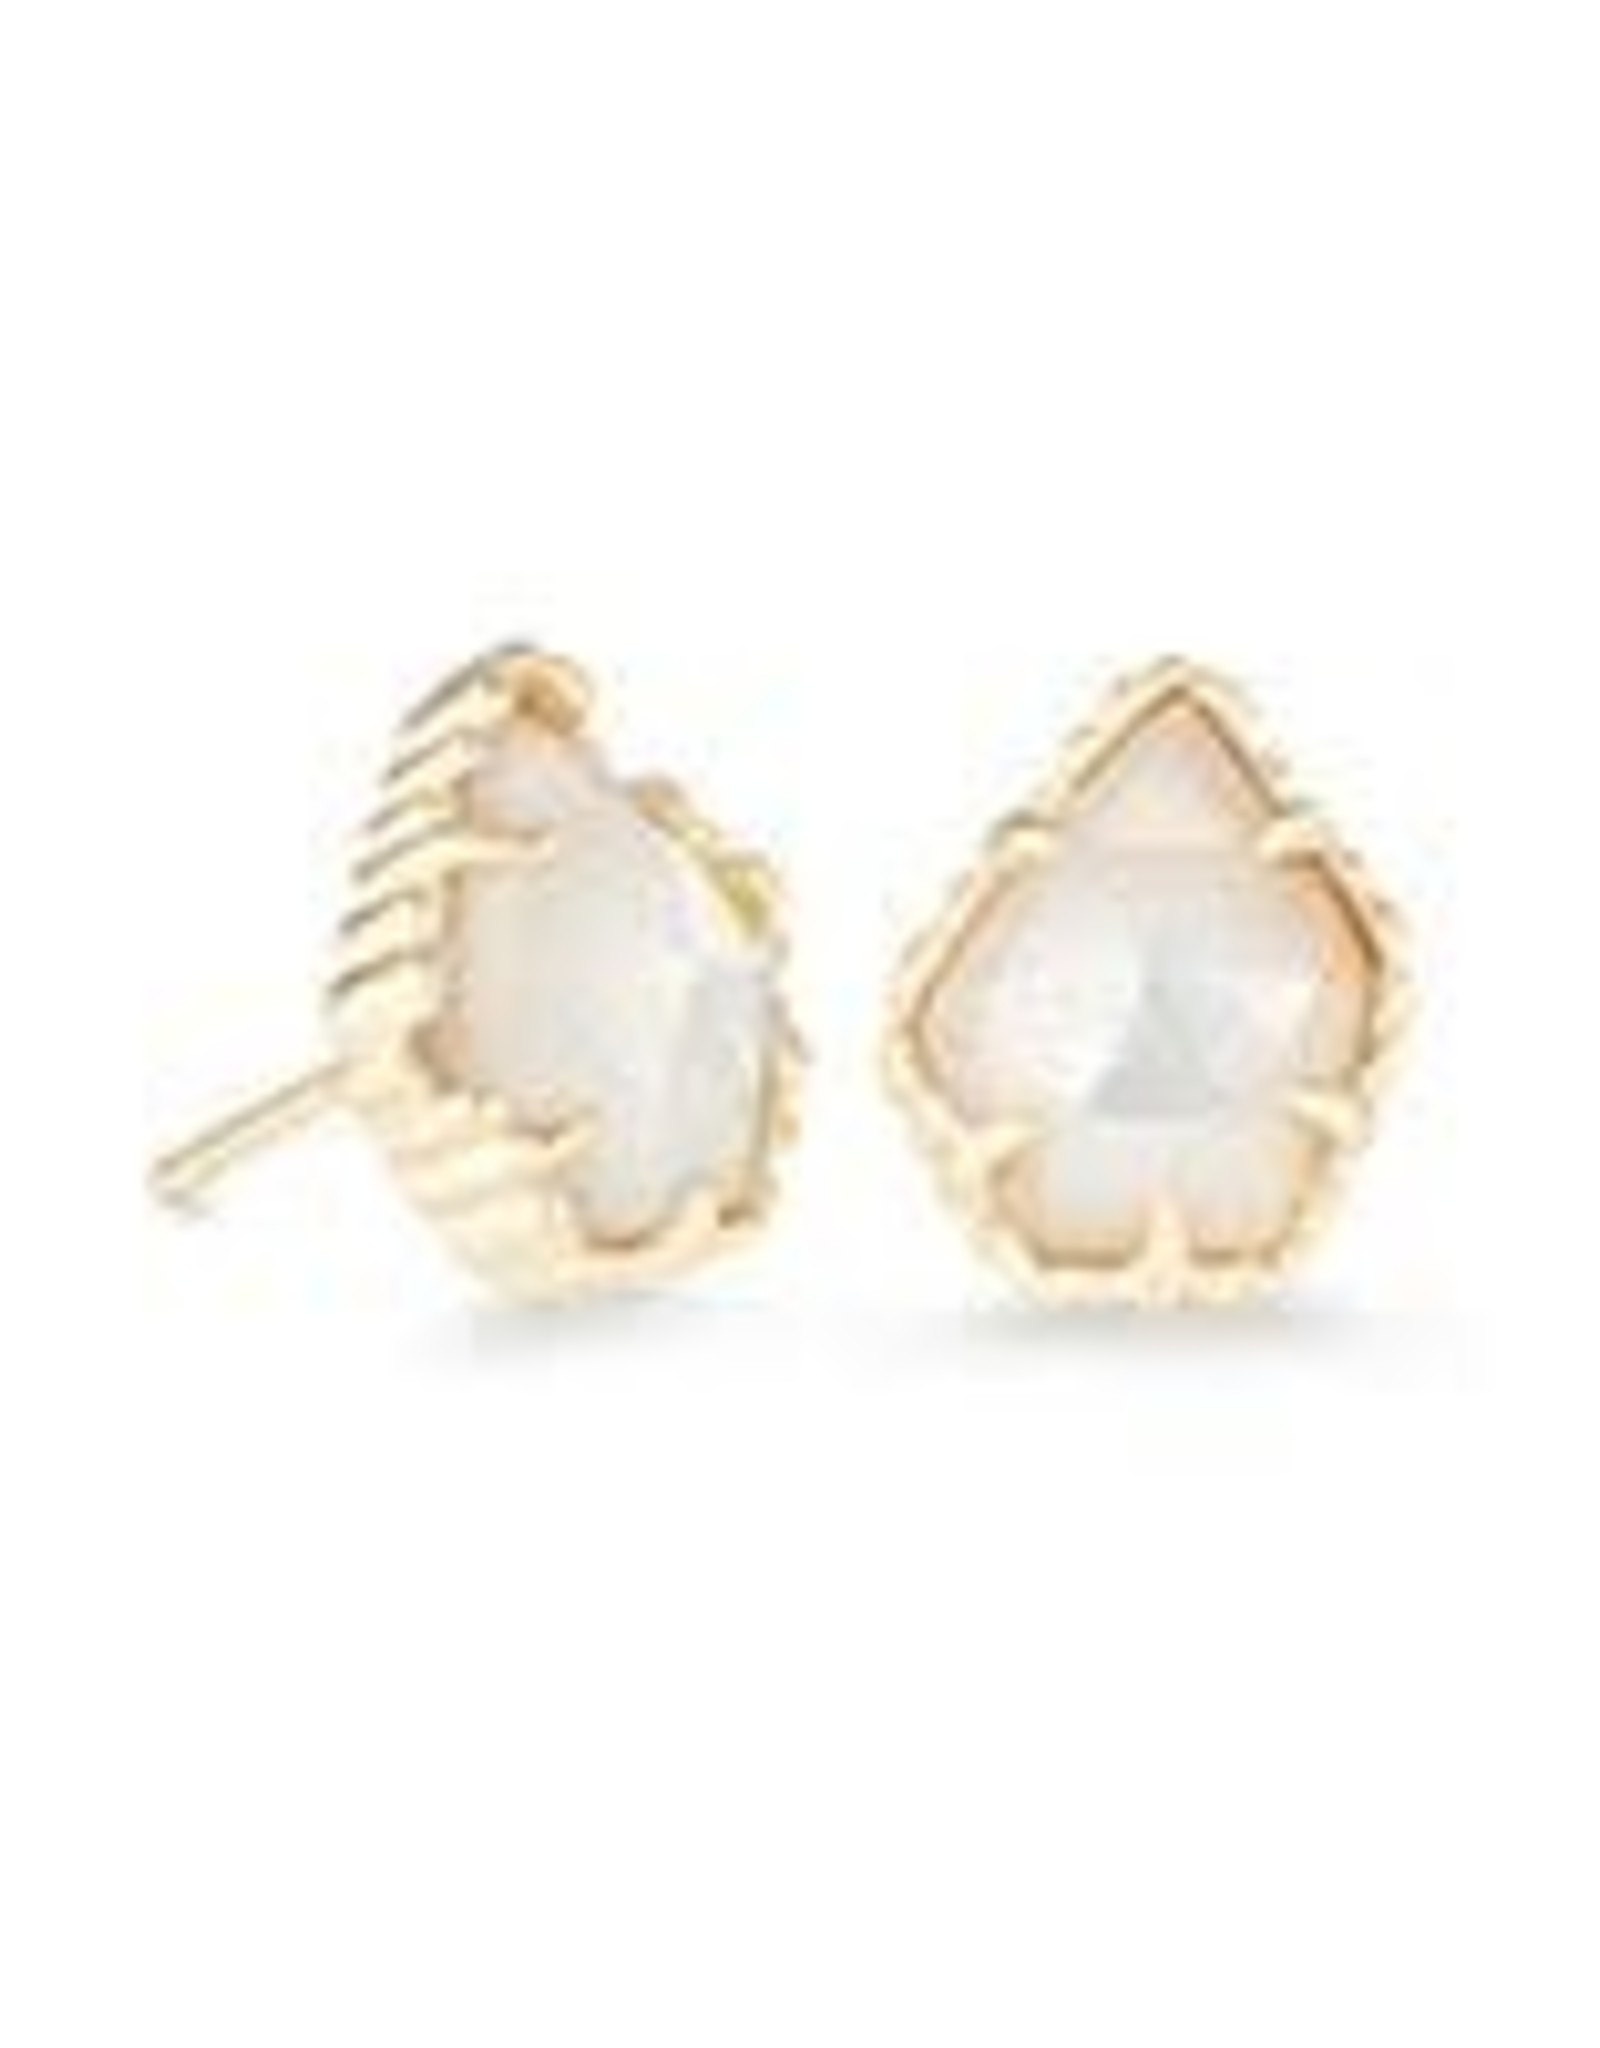 Kendra Scott KENDRA SCOTT Earrings Tessa Gold